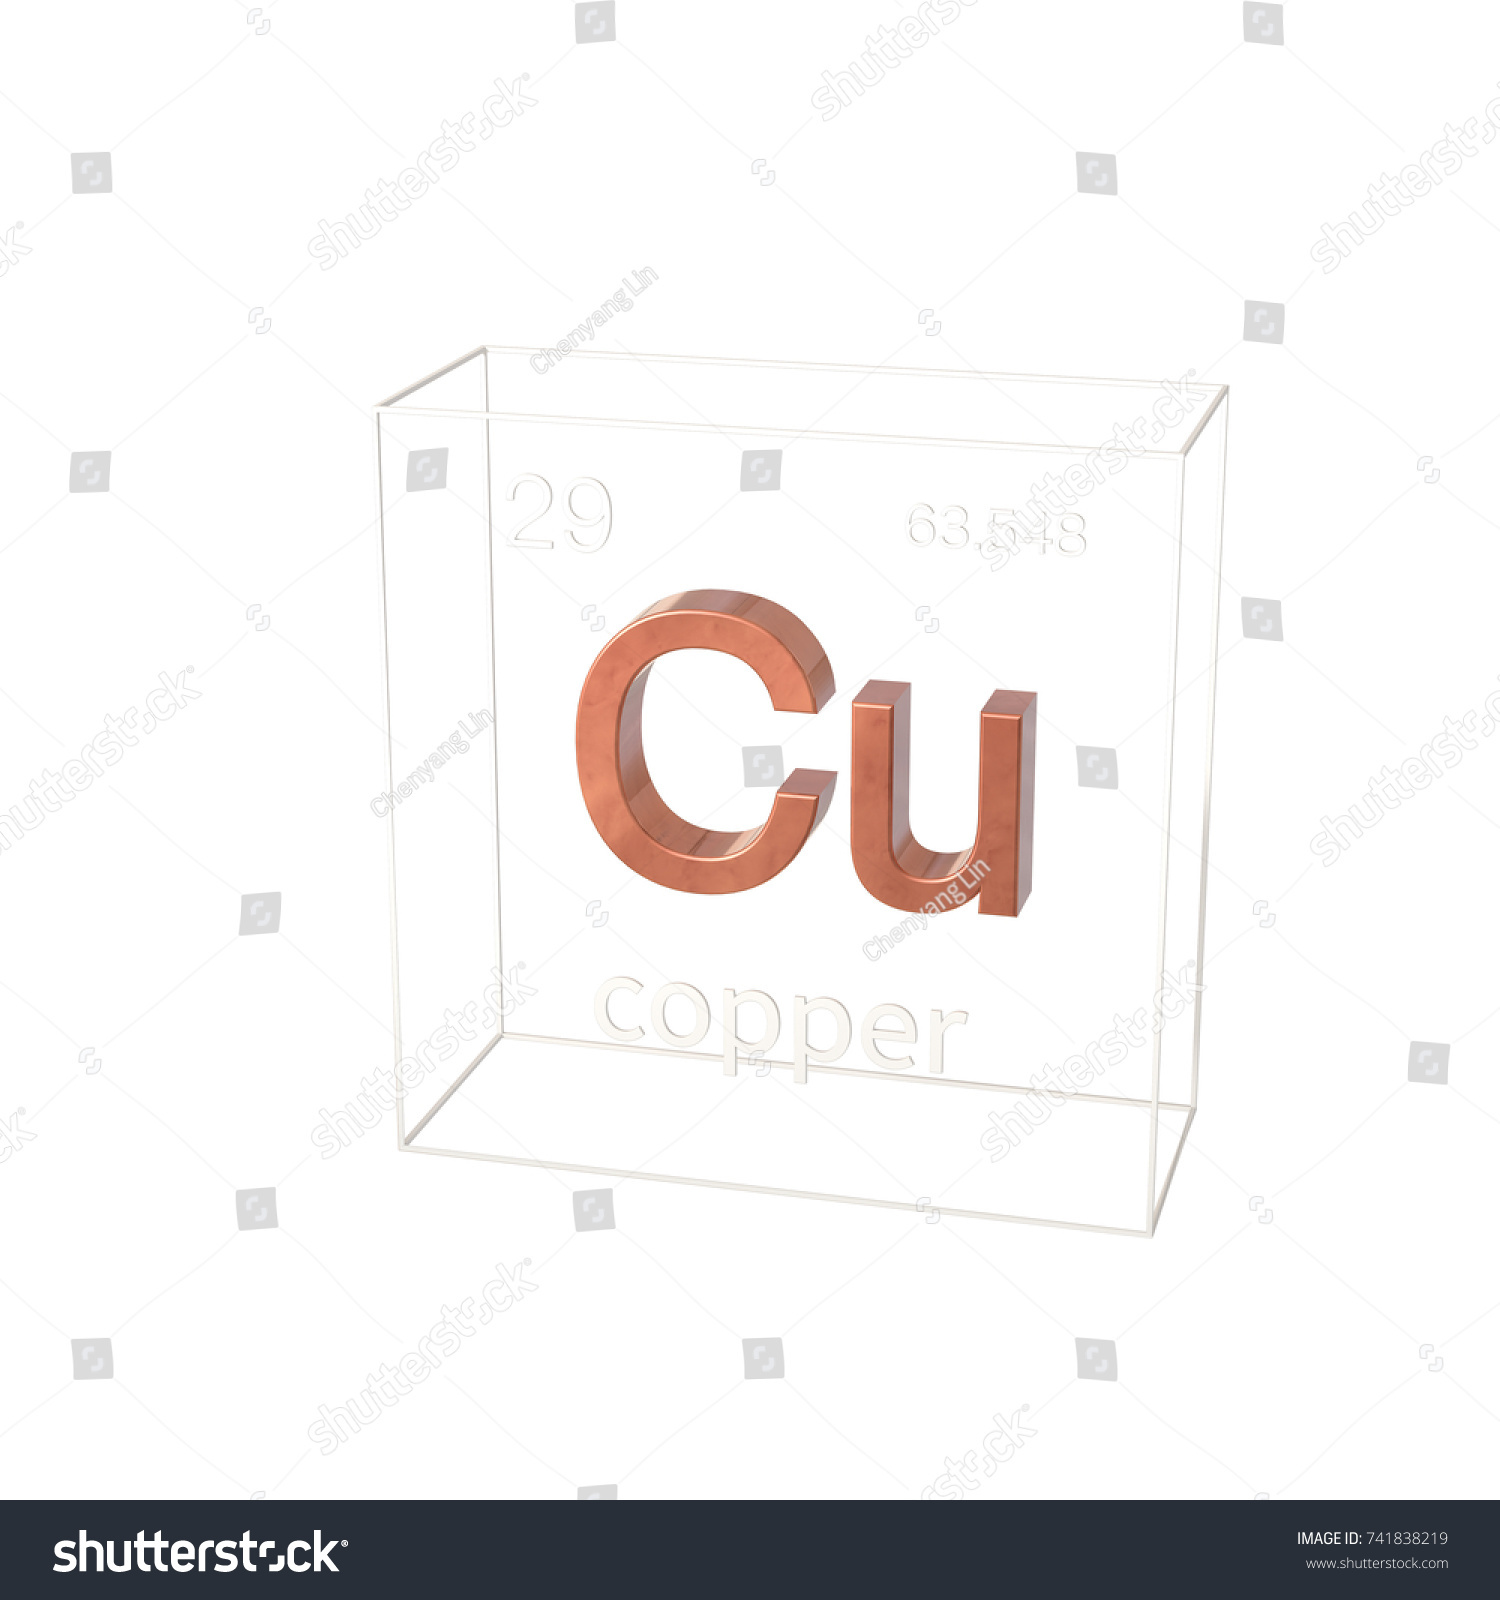 Copper periodic table of elements images periodic table images copper periodic table of elements choice image periodic table images copper periodic table of elements images gamestrikefo Choice Image